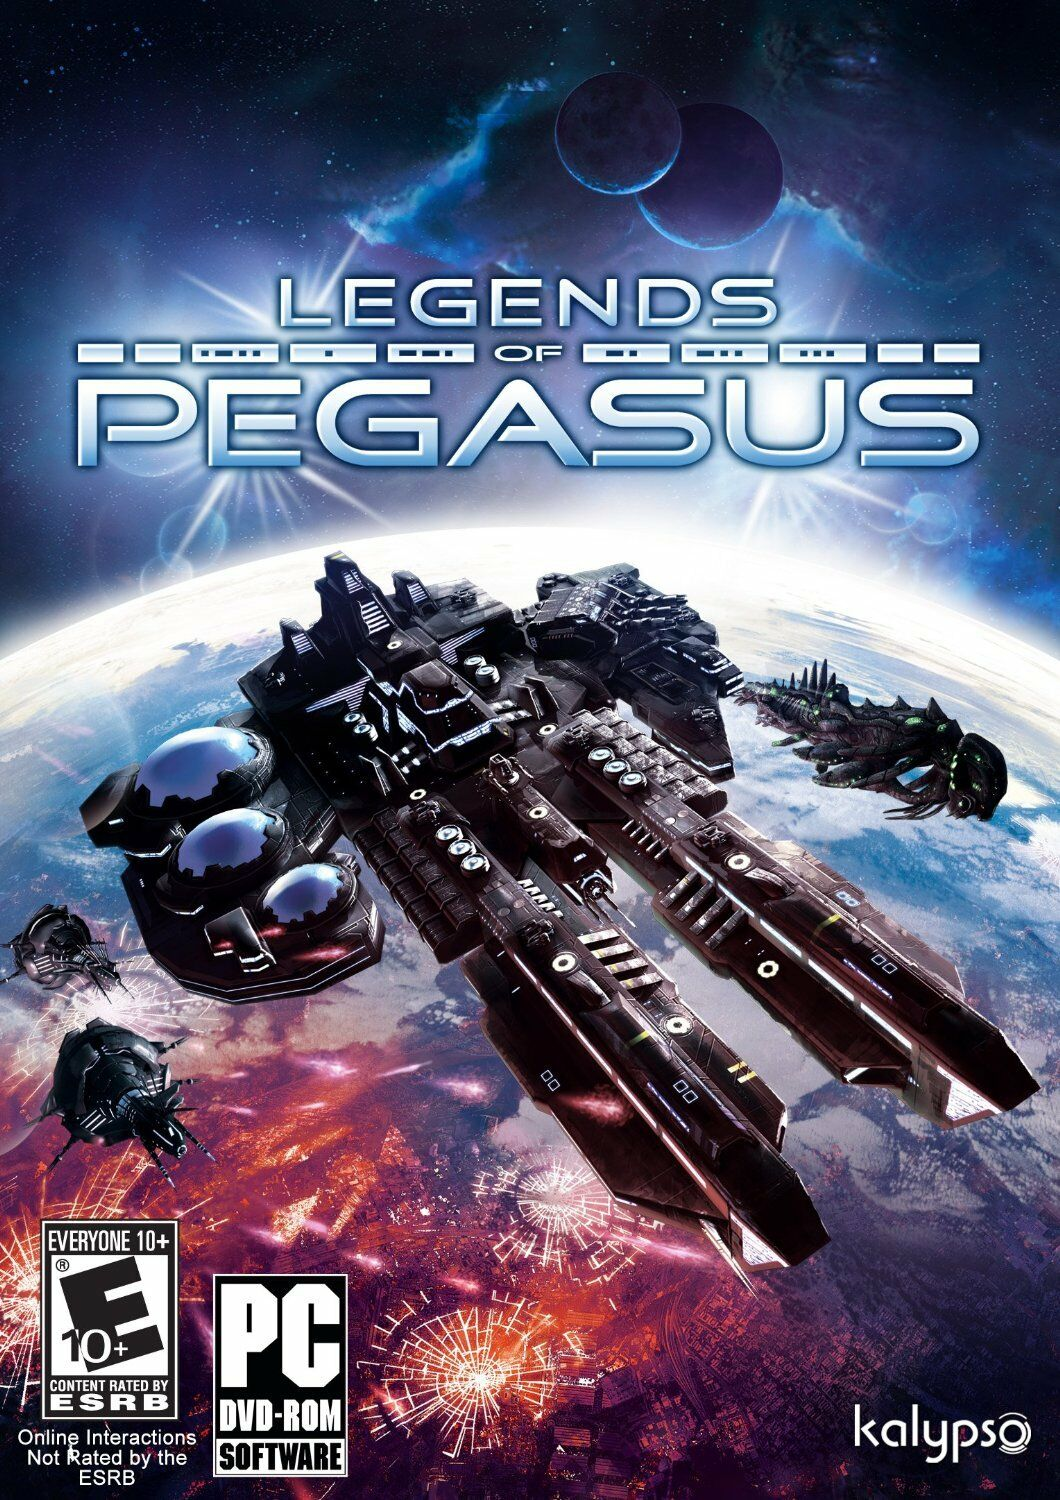 Computer Games - Legends of Pegasus PC Games Windows 10 8 7 XP Computer strategy space sim 4x NEW